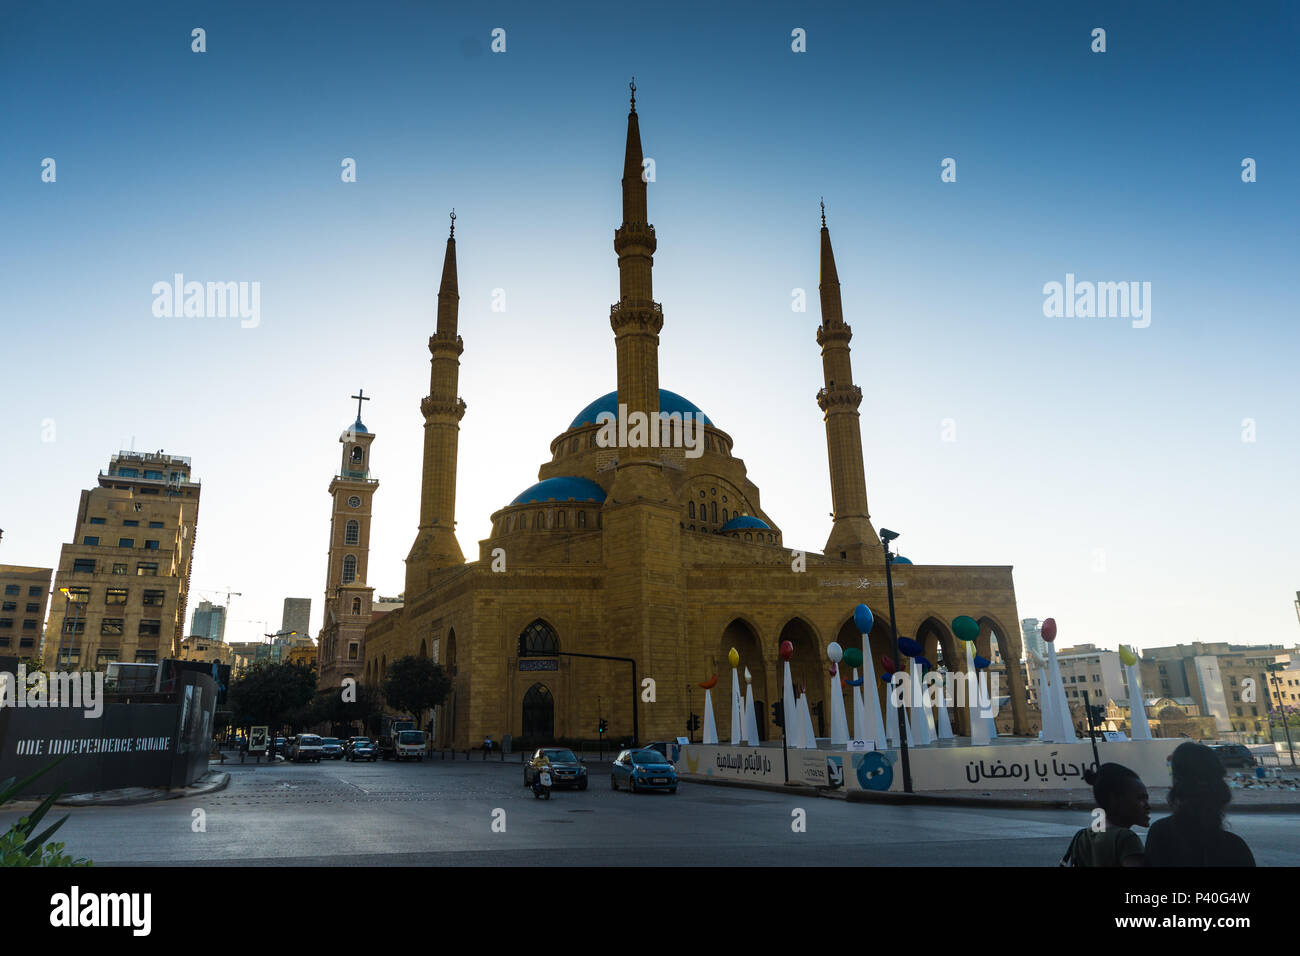 La Mosquée Al Omari Beyrouth Photo Stock